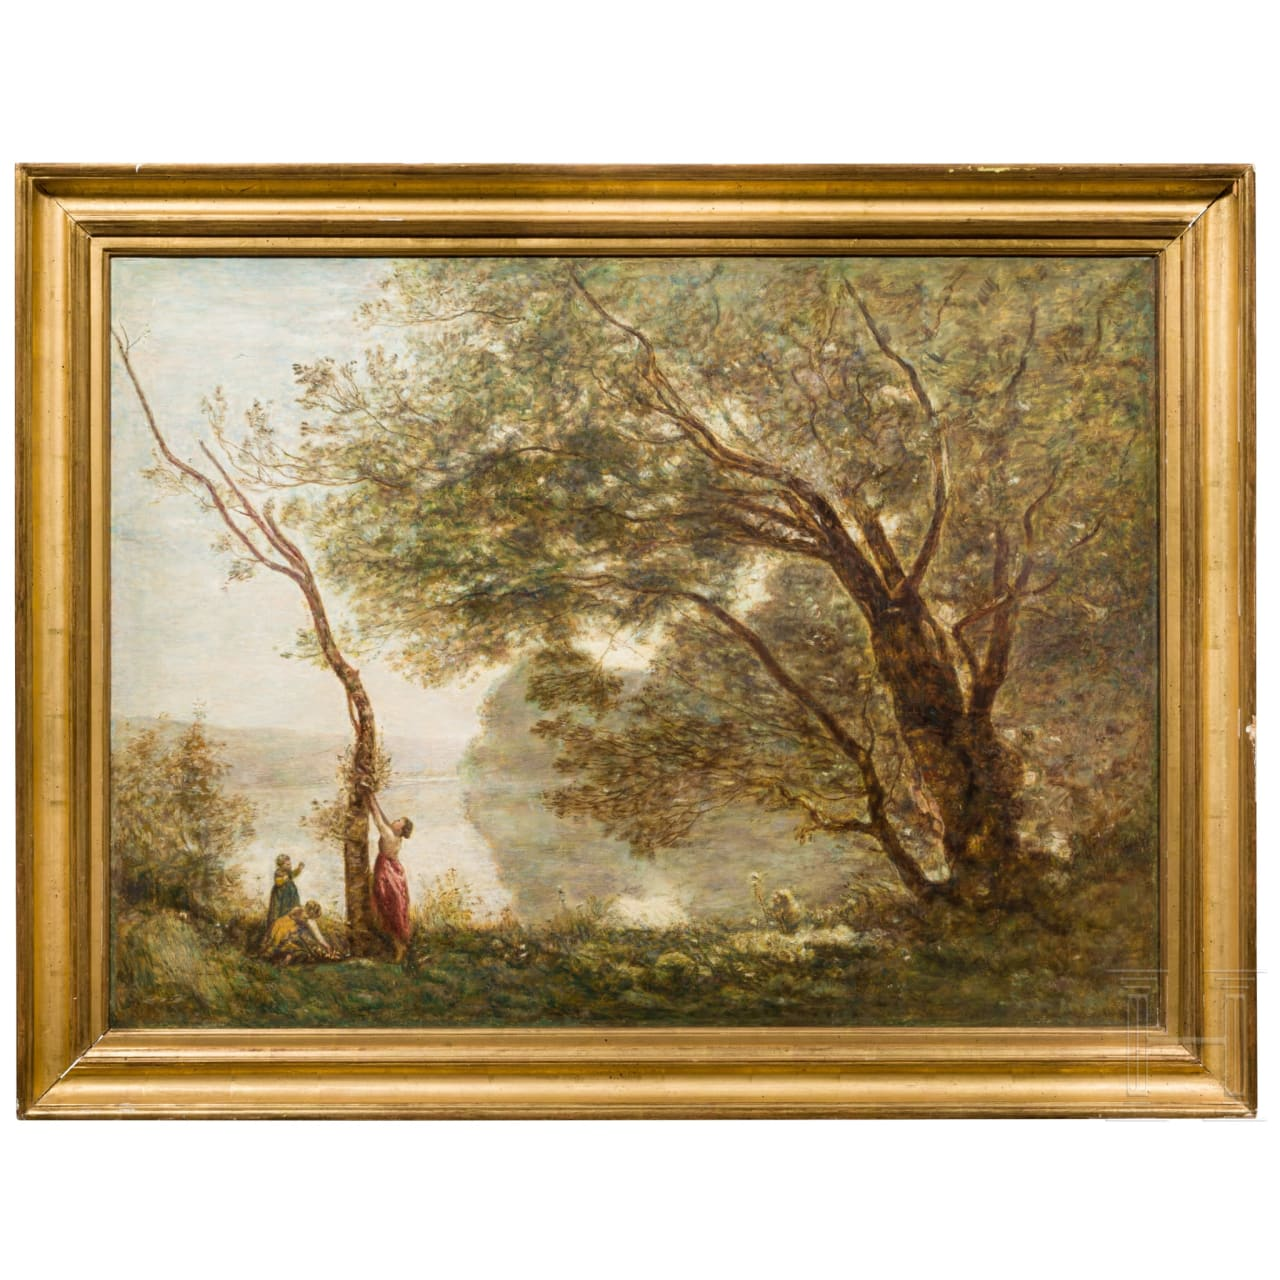 A French impressionist landscape, late 19th century